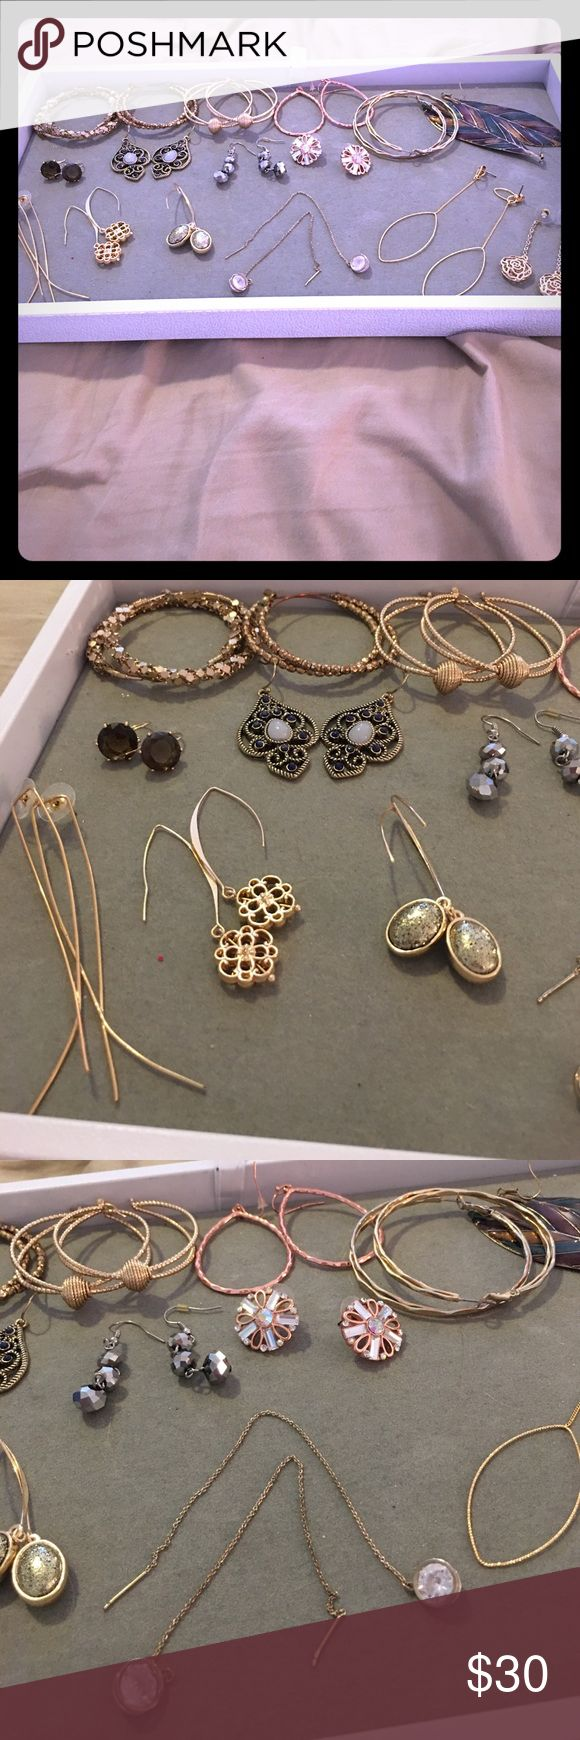 Lot of Earrings NY&Co and more! I have too many pairs I don't wear that I buy on sale.  Most of these are from New York & Company but I think the others are Premier Jewelry and Charlotte Russe. New York & Company Jewelry Earrings